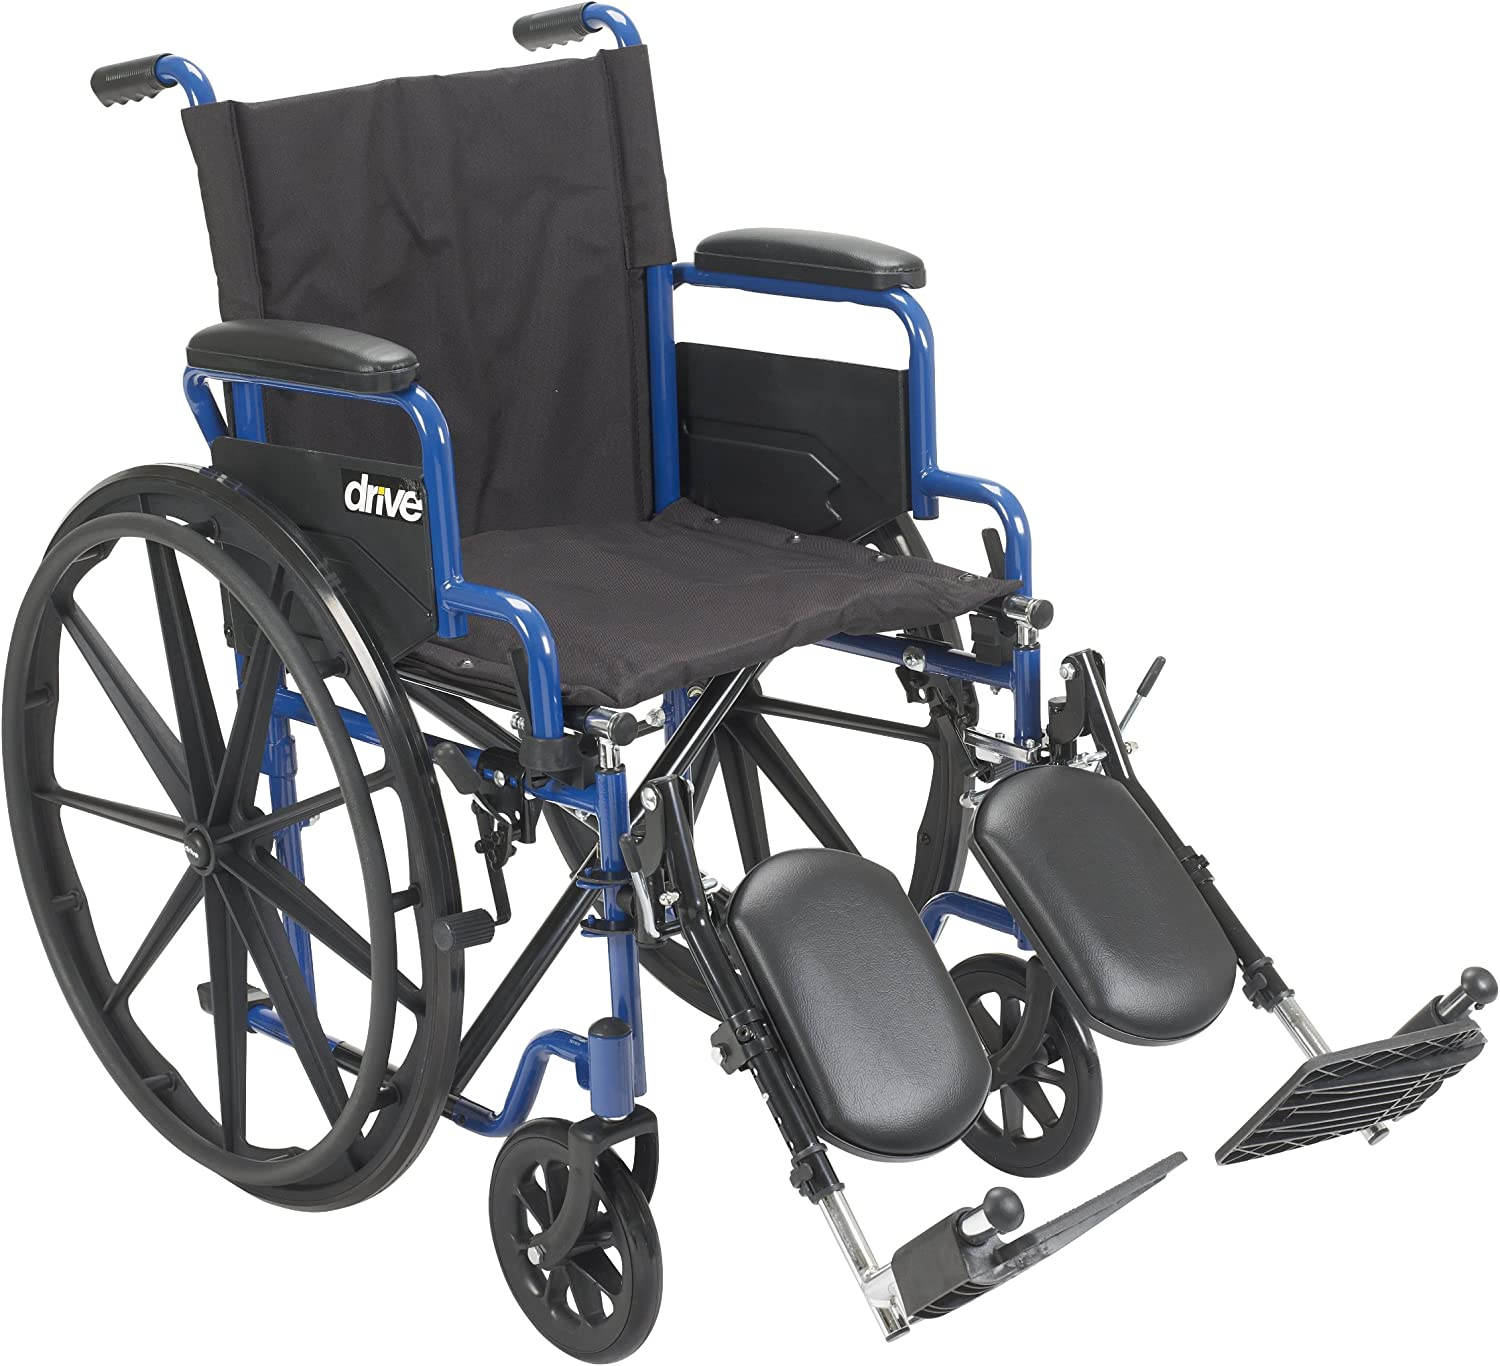 Drive Medical Blue Streak Wheelchair with Flip Back Desk Arms, Elevating Leg Rests, 18 Inch Seat: Health & Personal Care